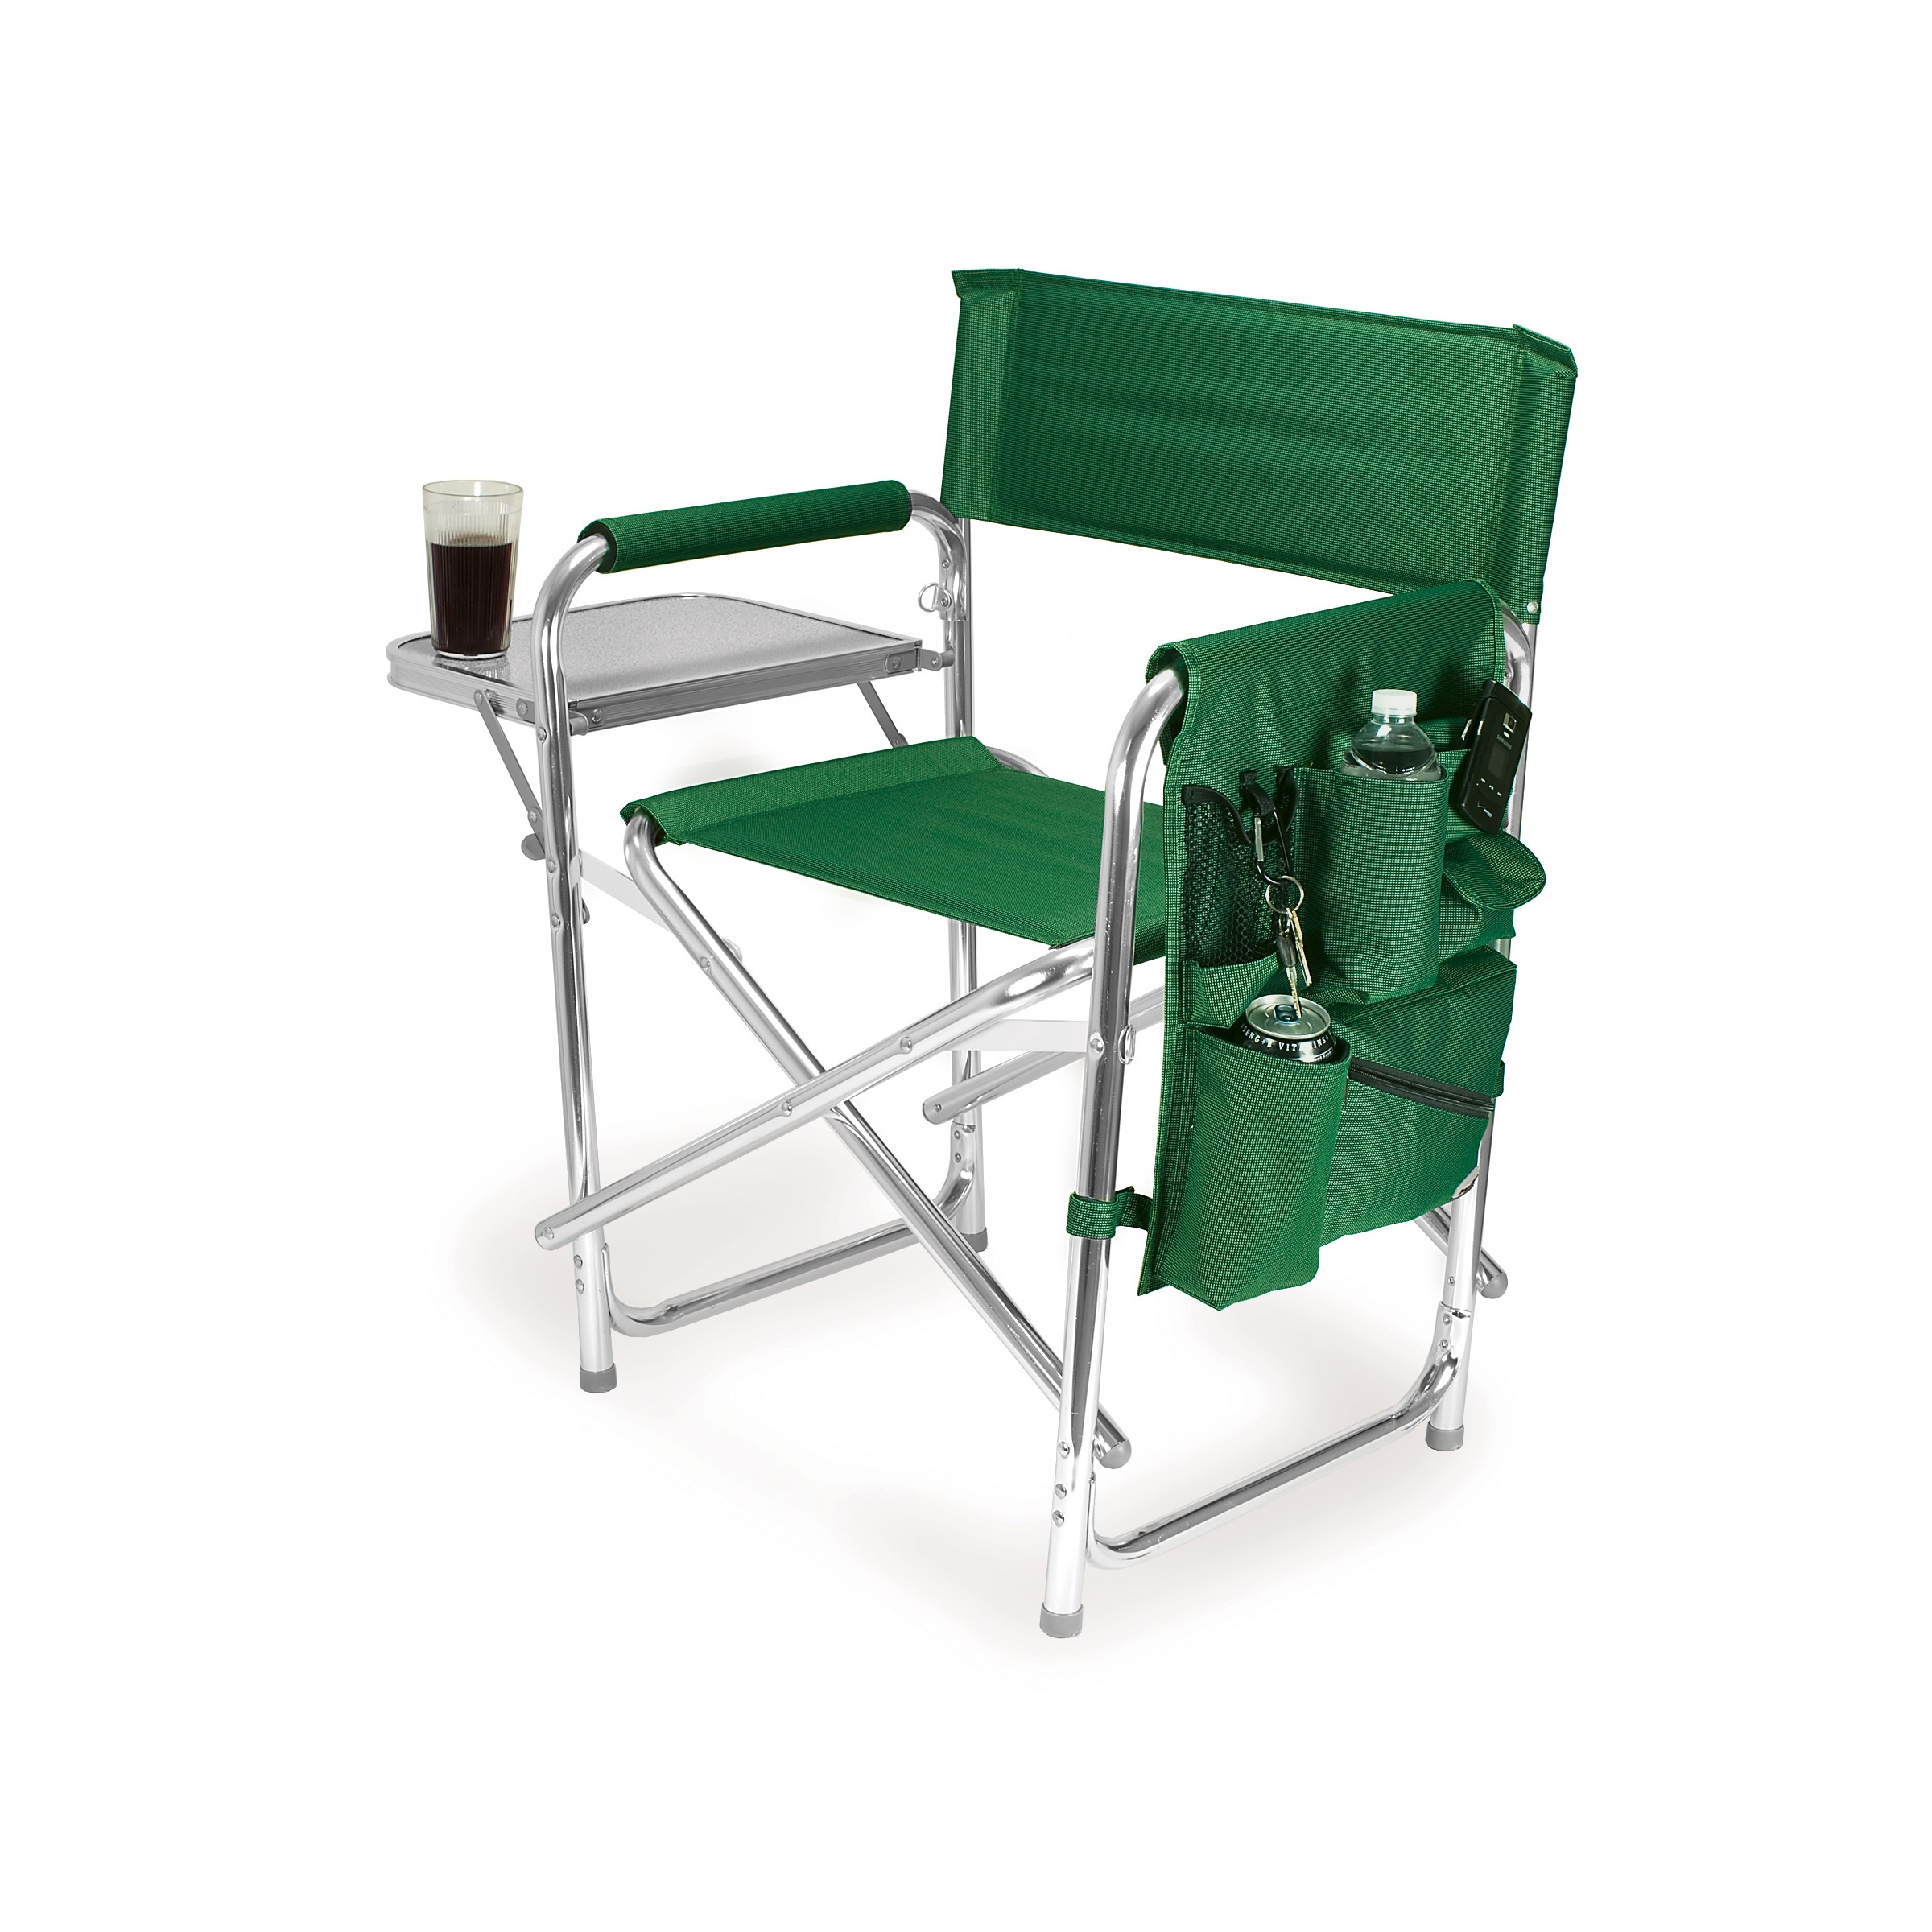 Picnic Chair Picnic Time Green Portable Folding Sports Camping Chair